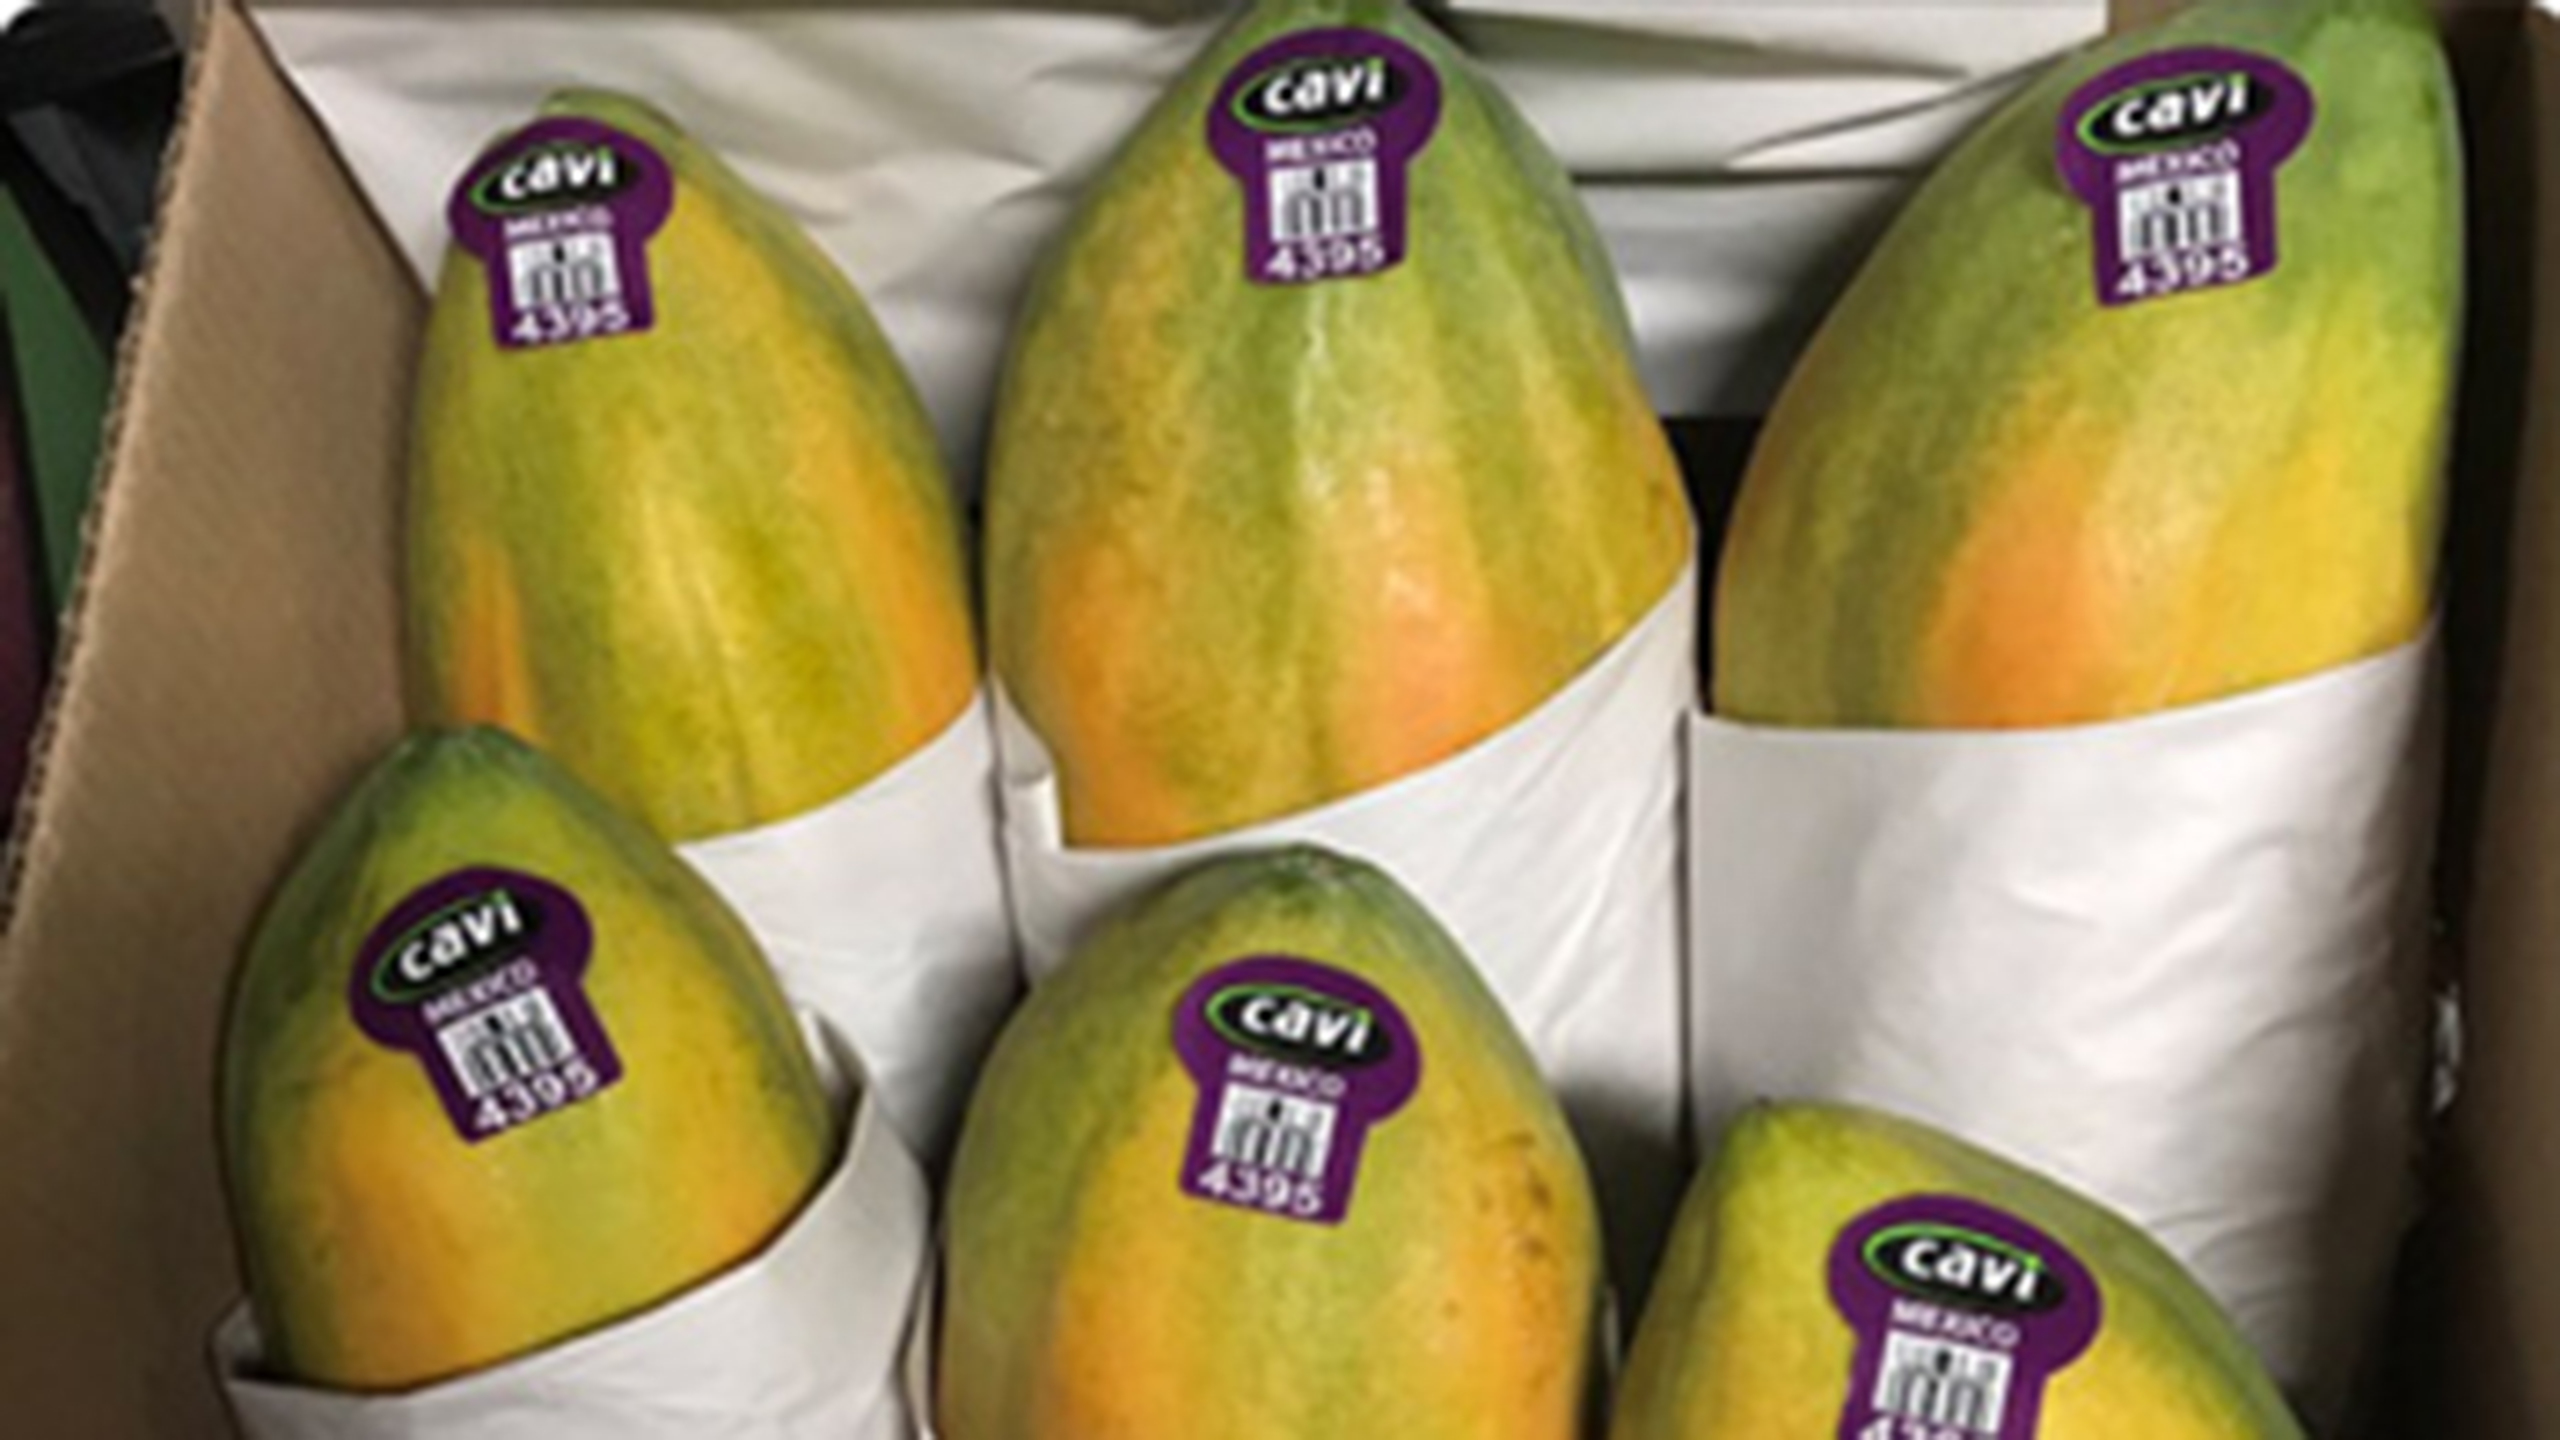 FDA: Seller 'refuses' to recall papayas linked to salmonella outbreak